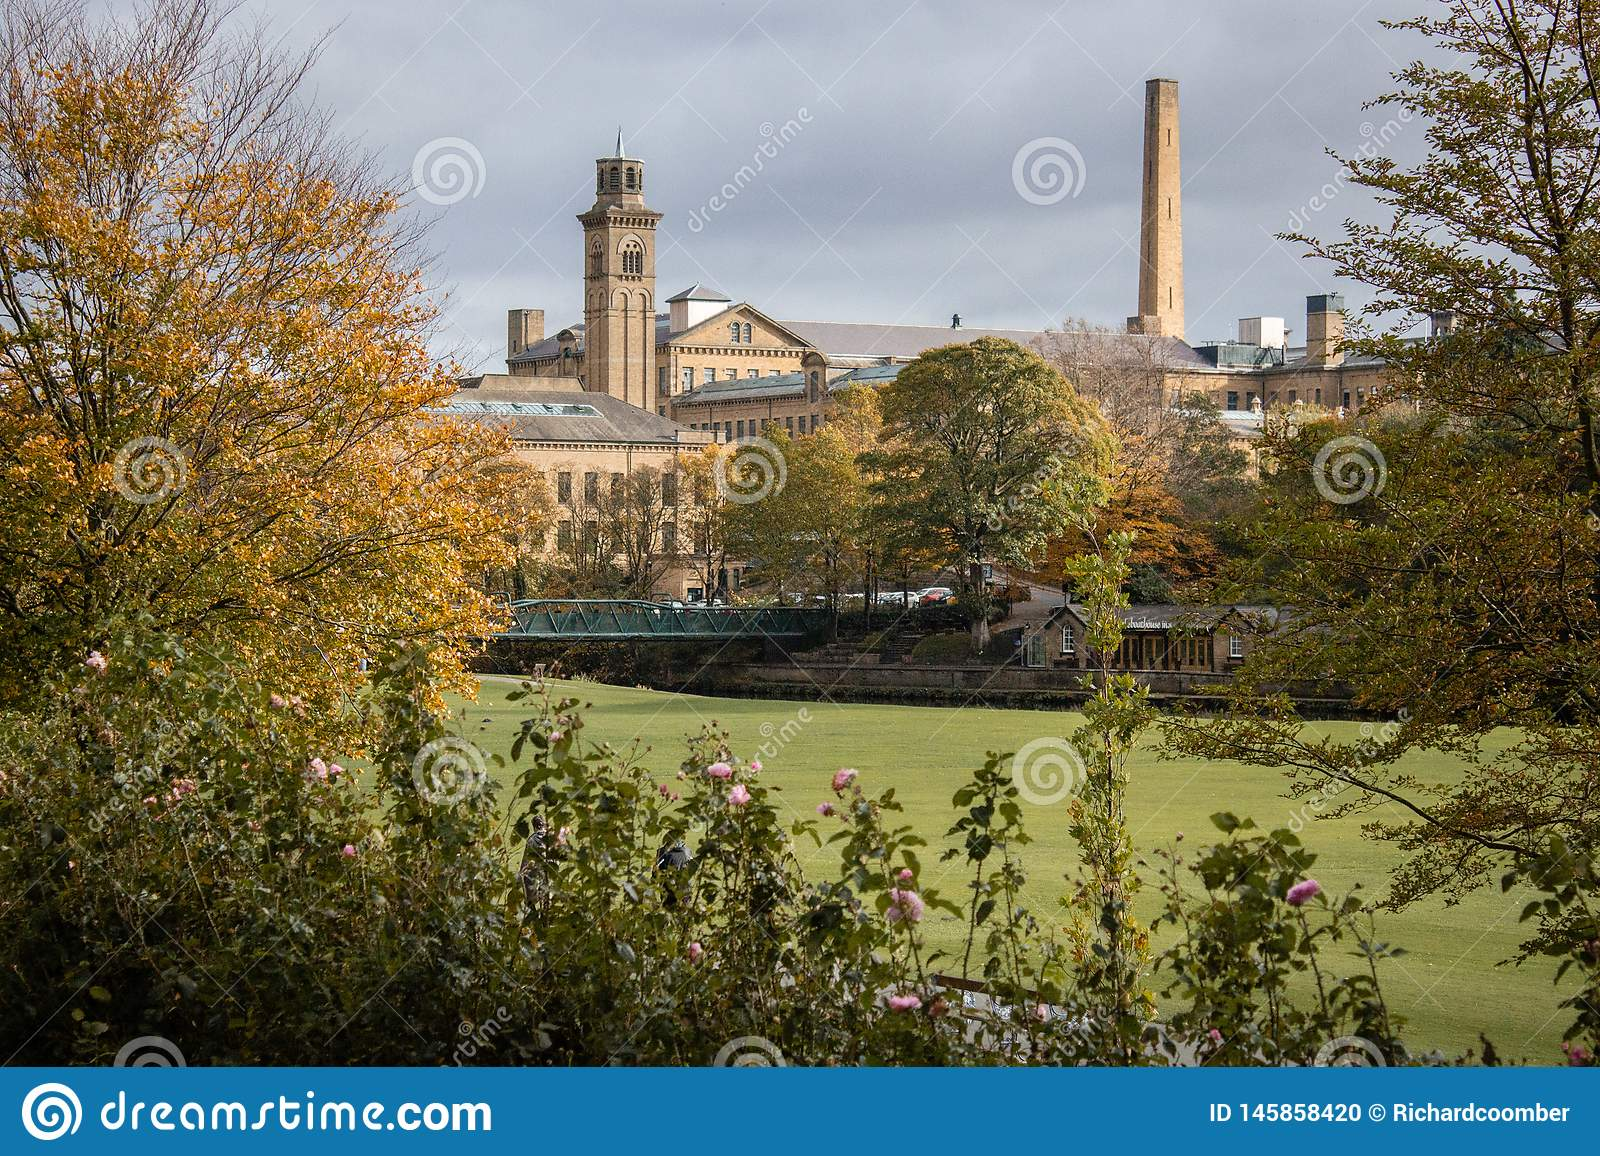 Victorian model village of Saltaire glimpsed through the trees